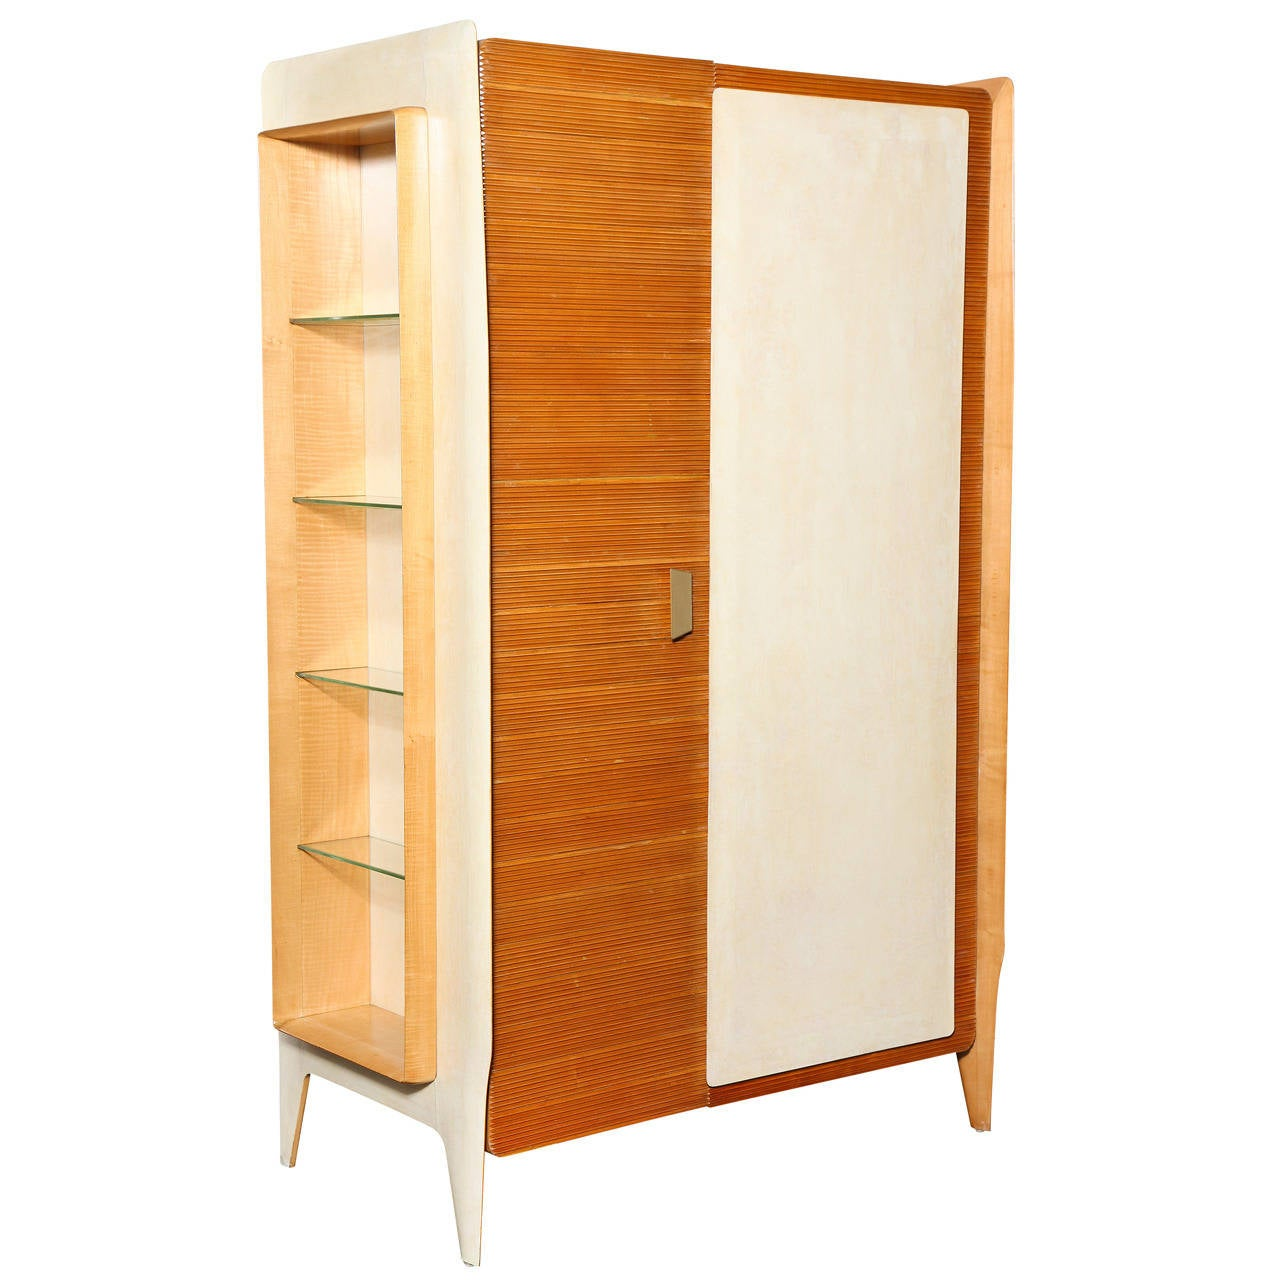 Extraordinary Two-Door Storage Cabinet by Gio Ponti at 1stdibs